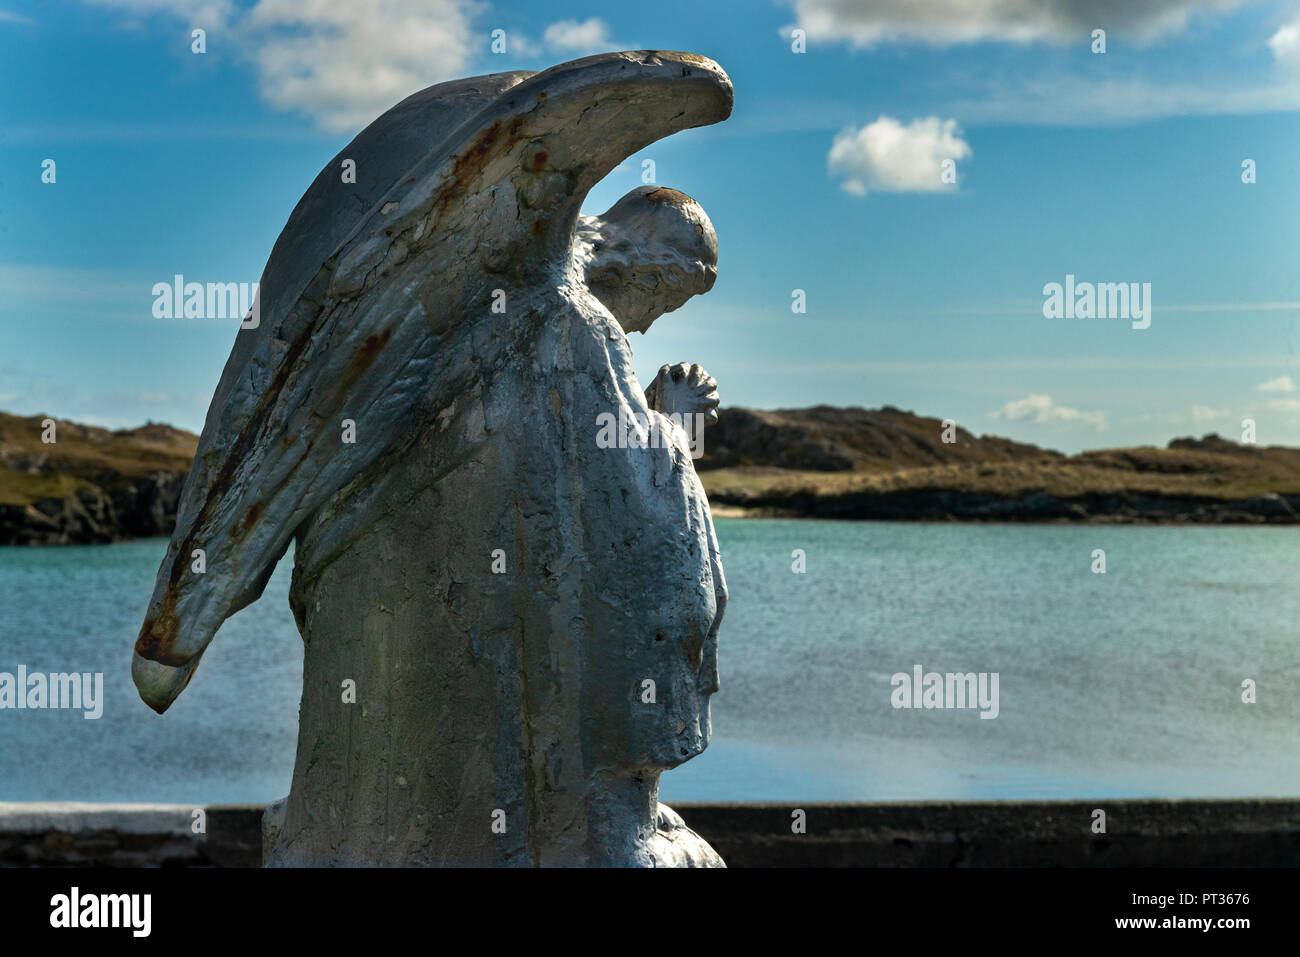 Angle praying, looking out  over the bay, Old fishing boast - IRELAND, Connemara, Inishboffin island, Inis Bo Finne (Island of the White Cow) - Stock Image